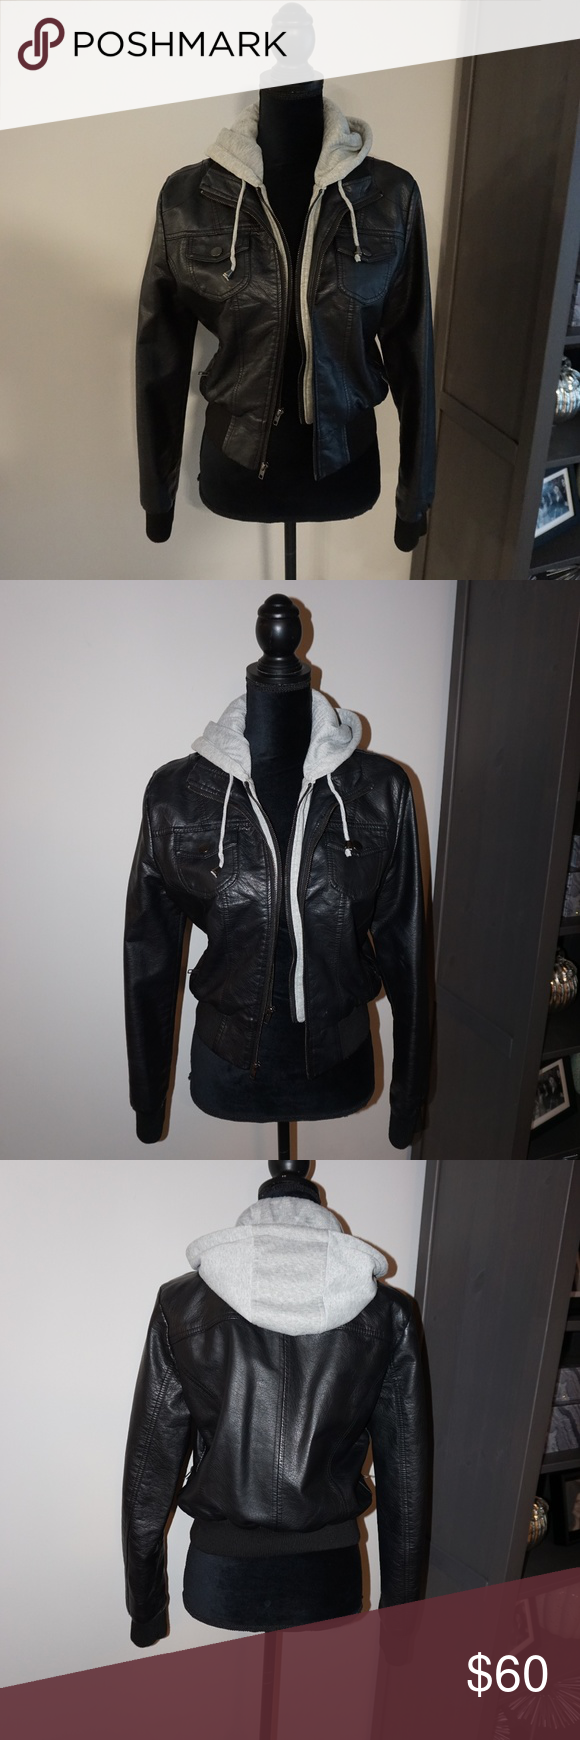 Ashley Faux Leather Jacket With Attached Hoodie Jackets Leather Jacket Faux Leather Jackets [ 1740 x 580 Pixel ]